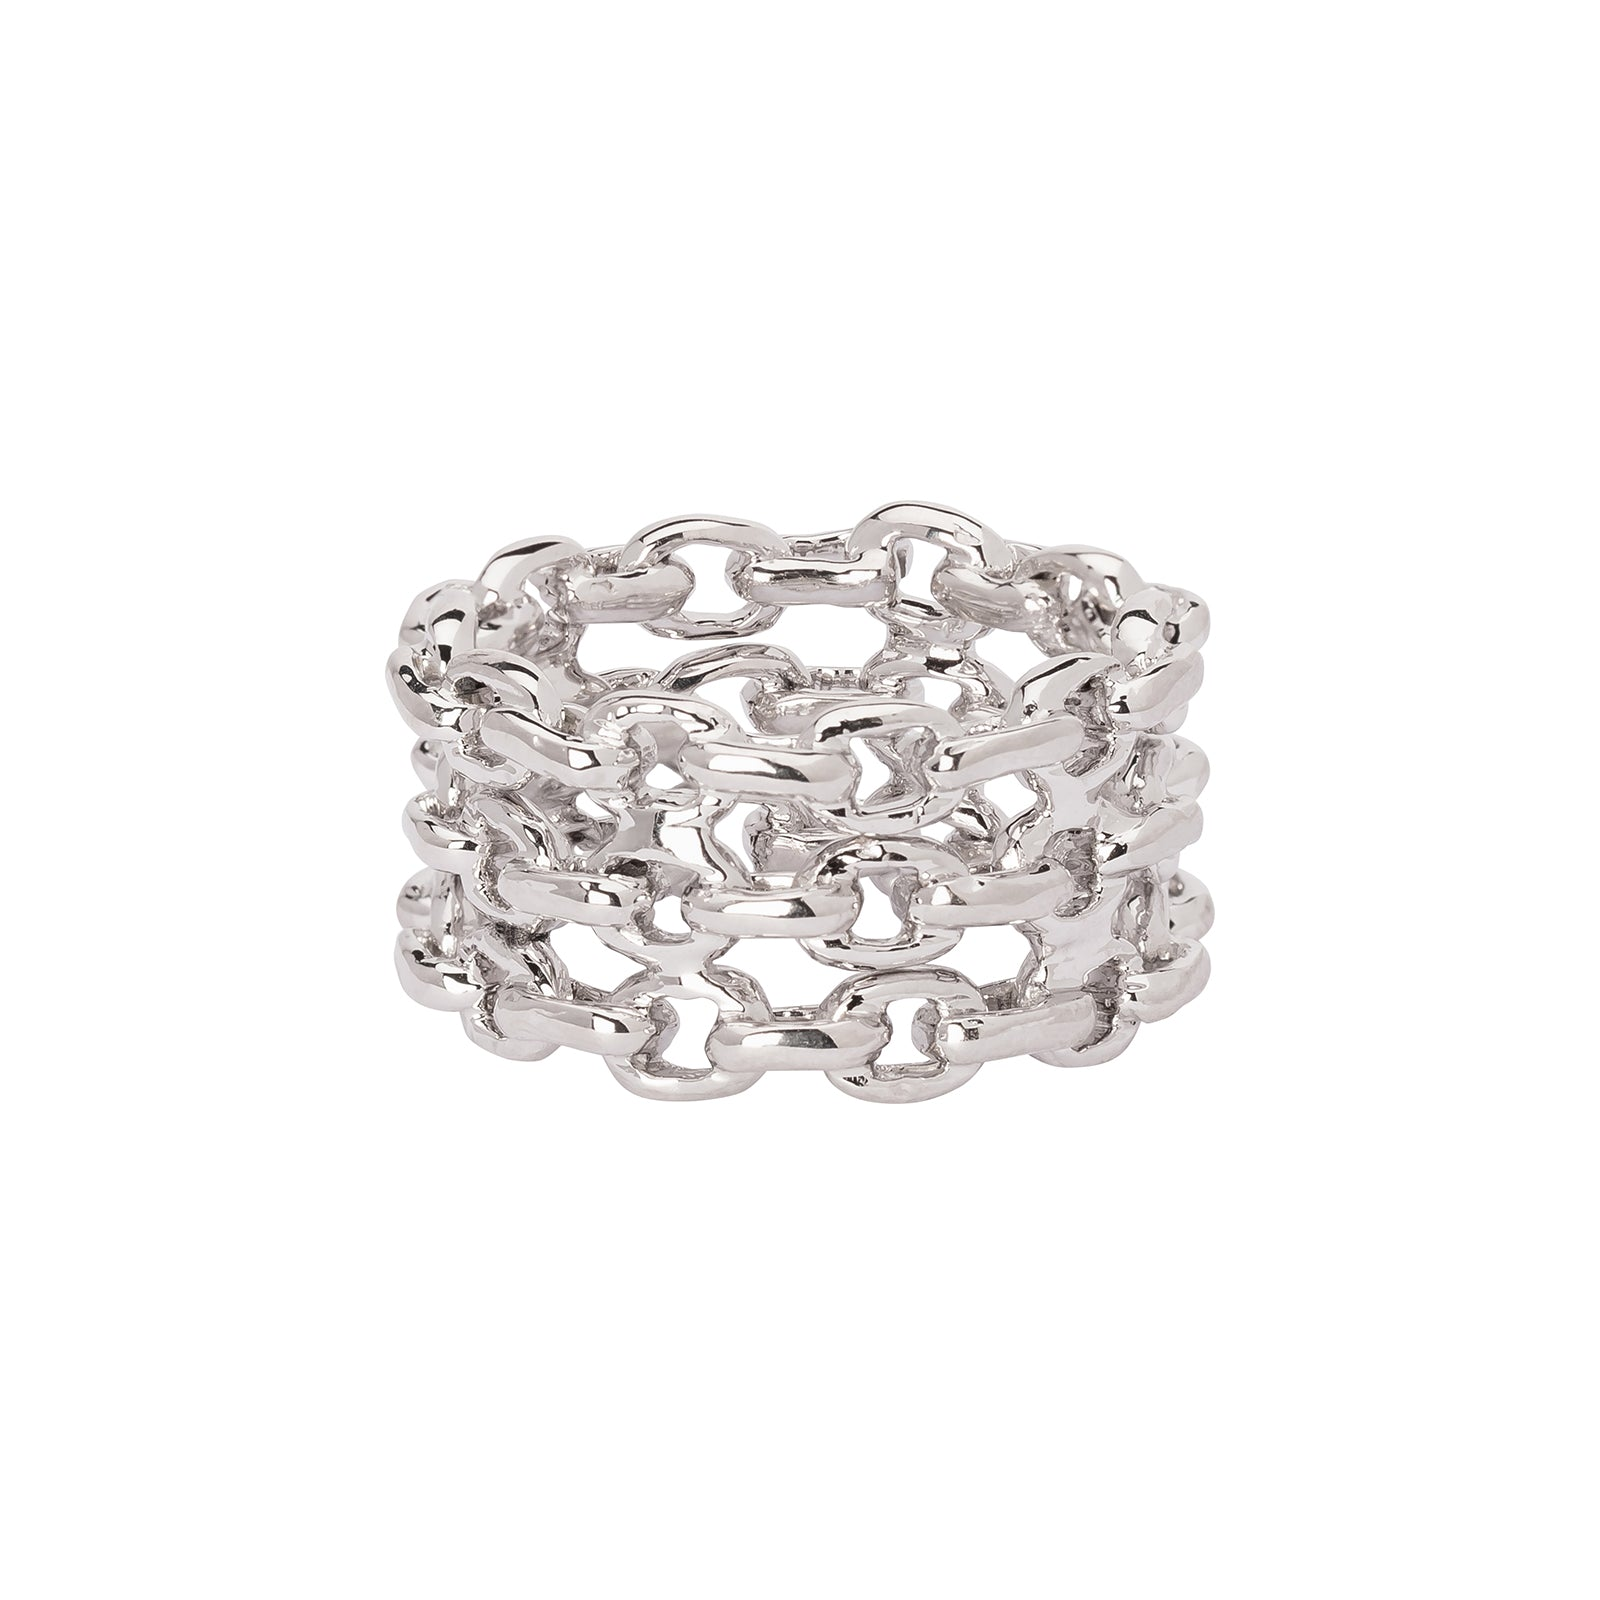 Patcharavipa Chain Three Row Ring - White Gold - Rings - Broken English Jewelry